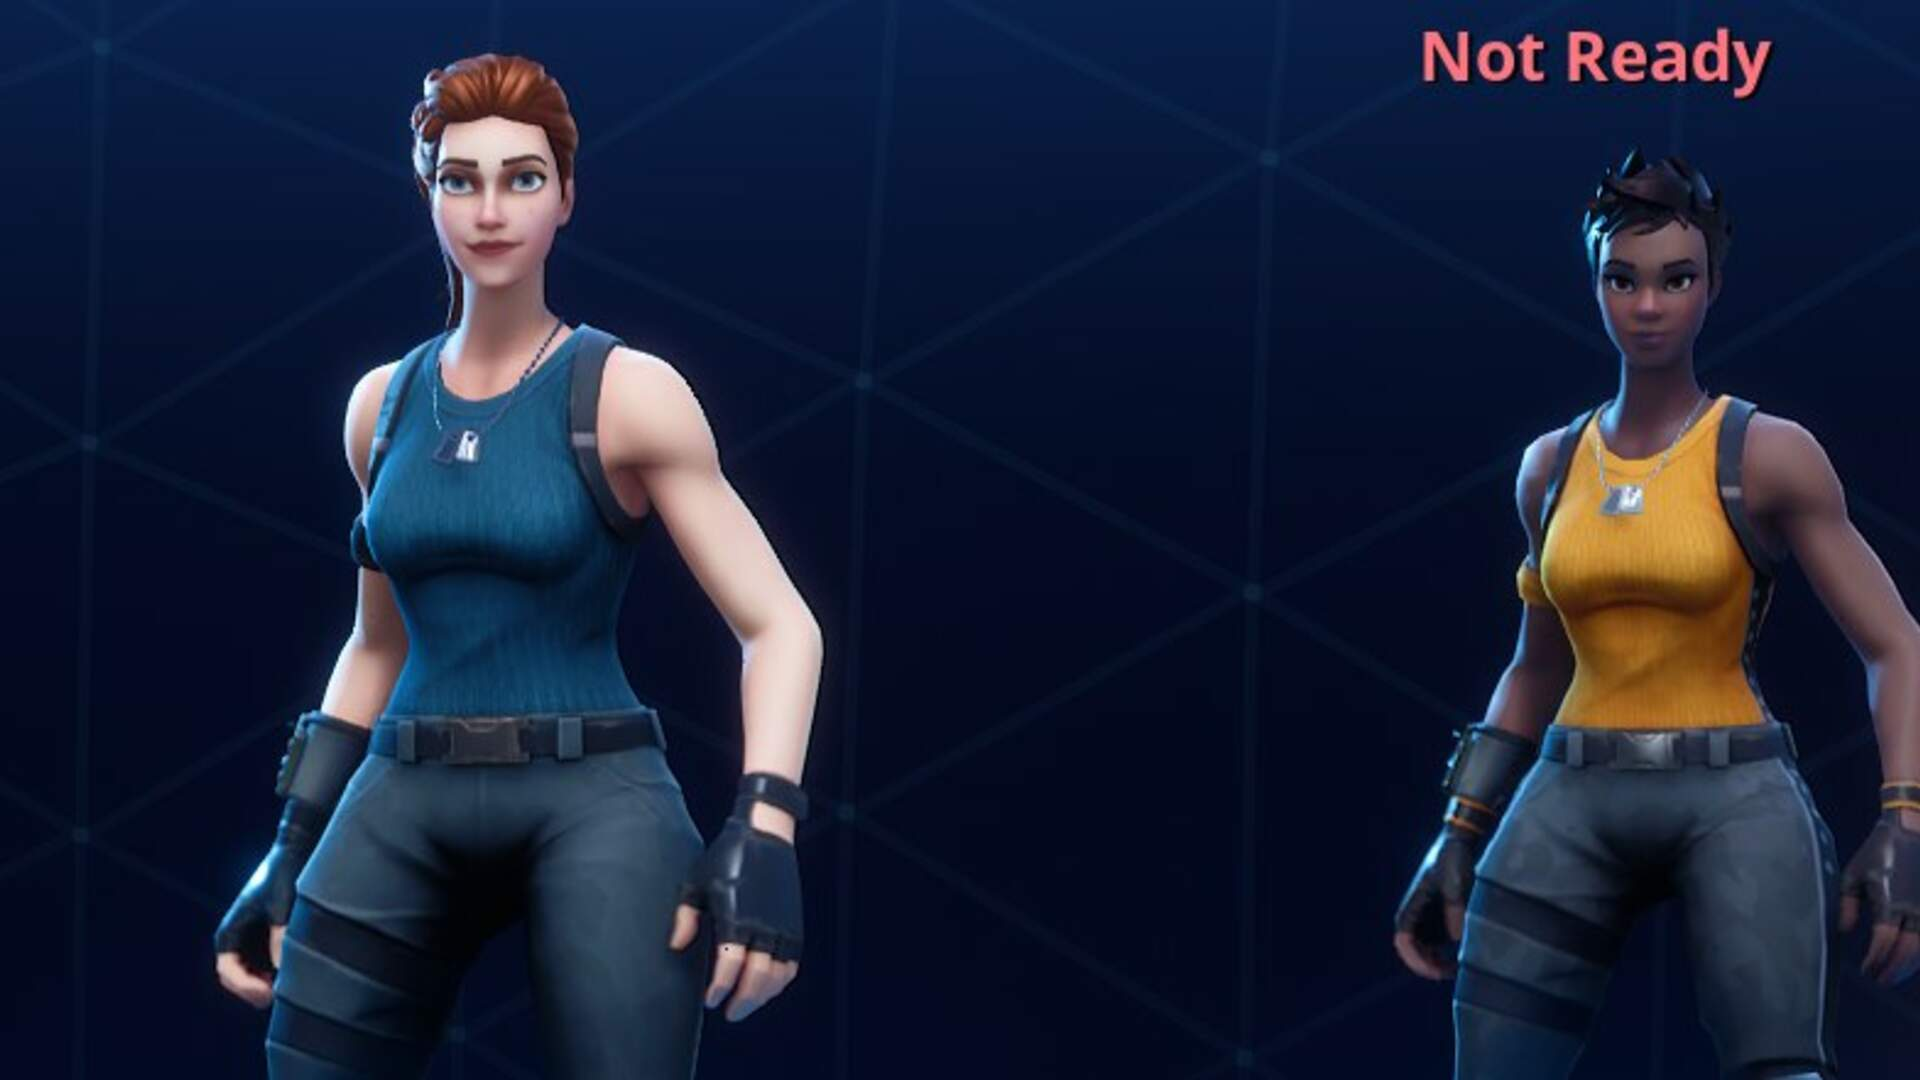 How to Cross-Play Fortnite With PS4, Xbox One, PC, and Switch